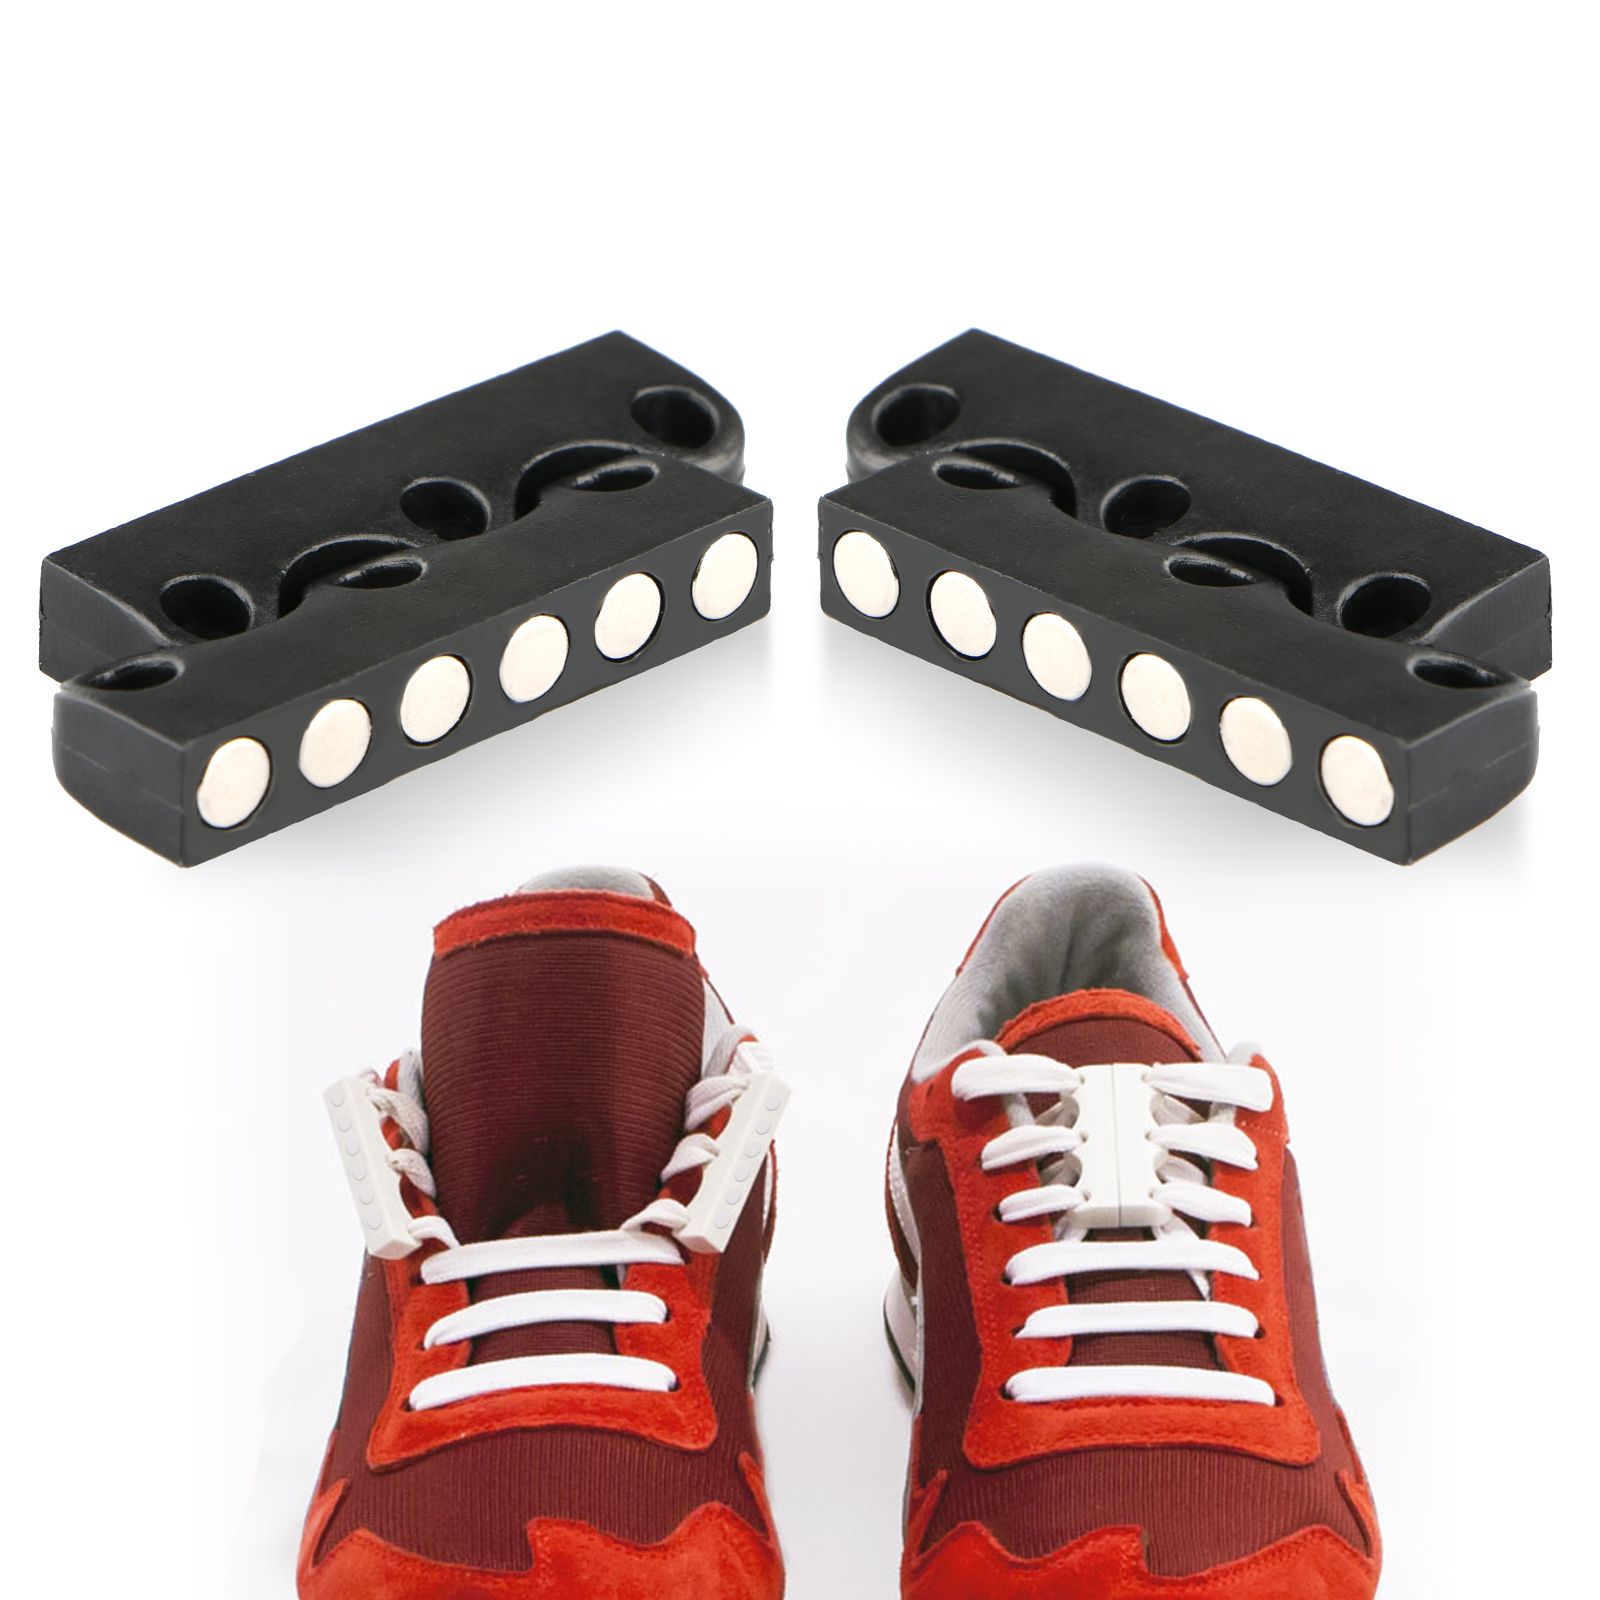 TSV Novelty DIY Shoe Buckles Sneaker No-Tie Magnetic Casual Closure Snap-in Shoelace for Adults & Kids - Black